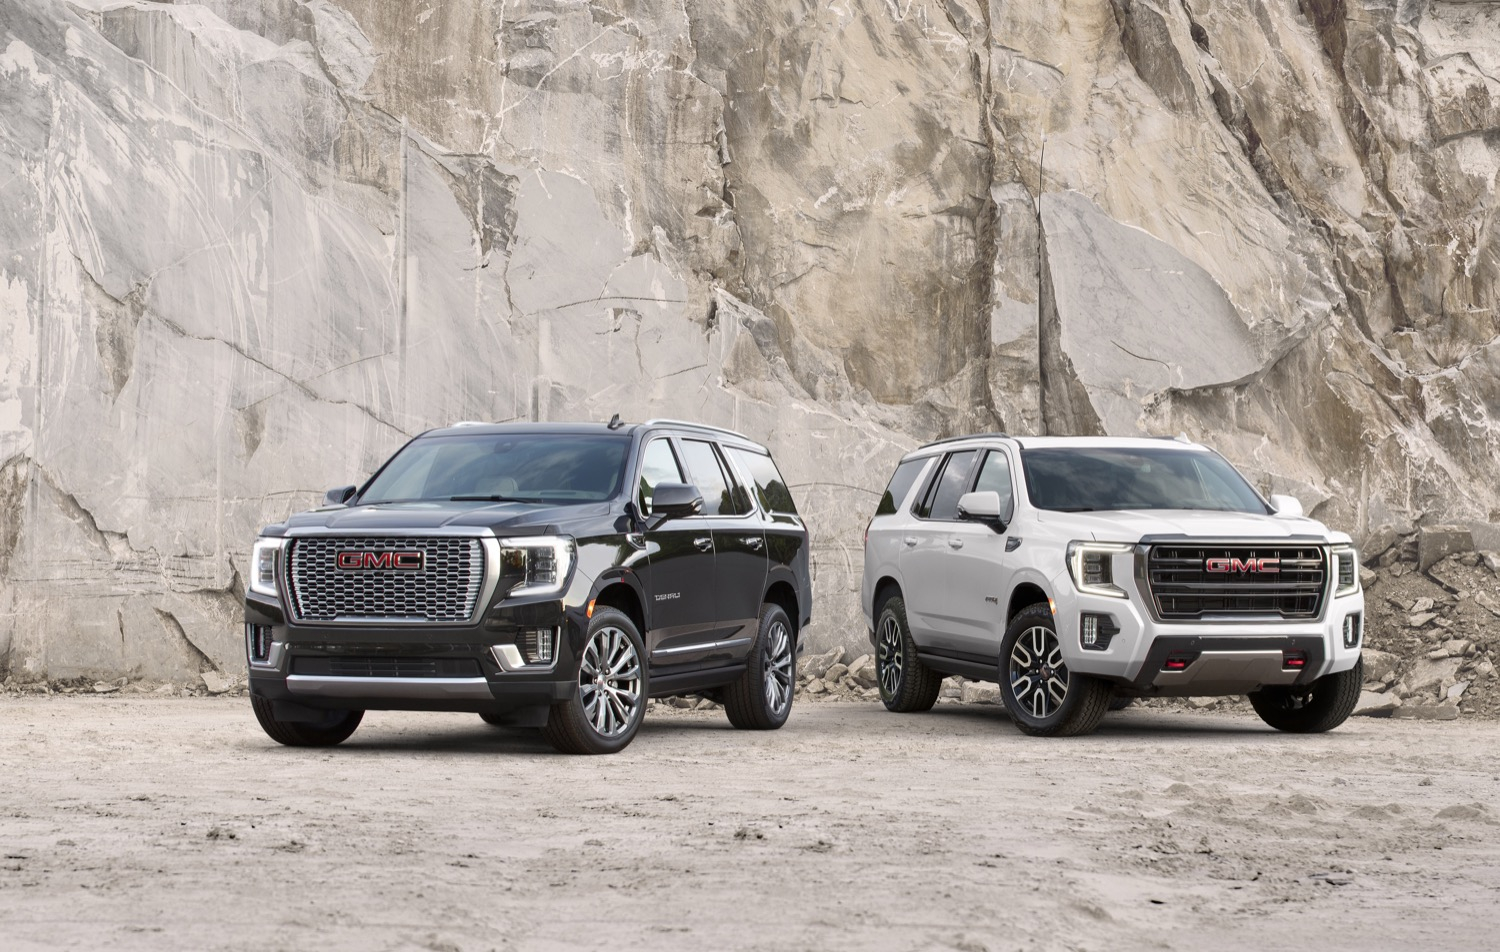 This Is The 2021 Gmc Yukon And Yukon Xl | Gm Authority 2021 Buick Verano Upgrades, Towing Capacity, Ground Clearance